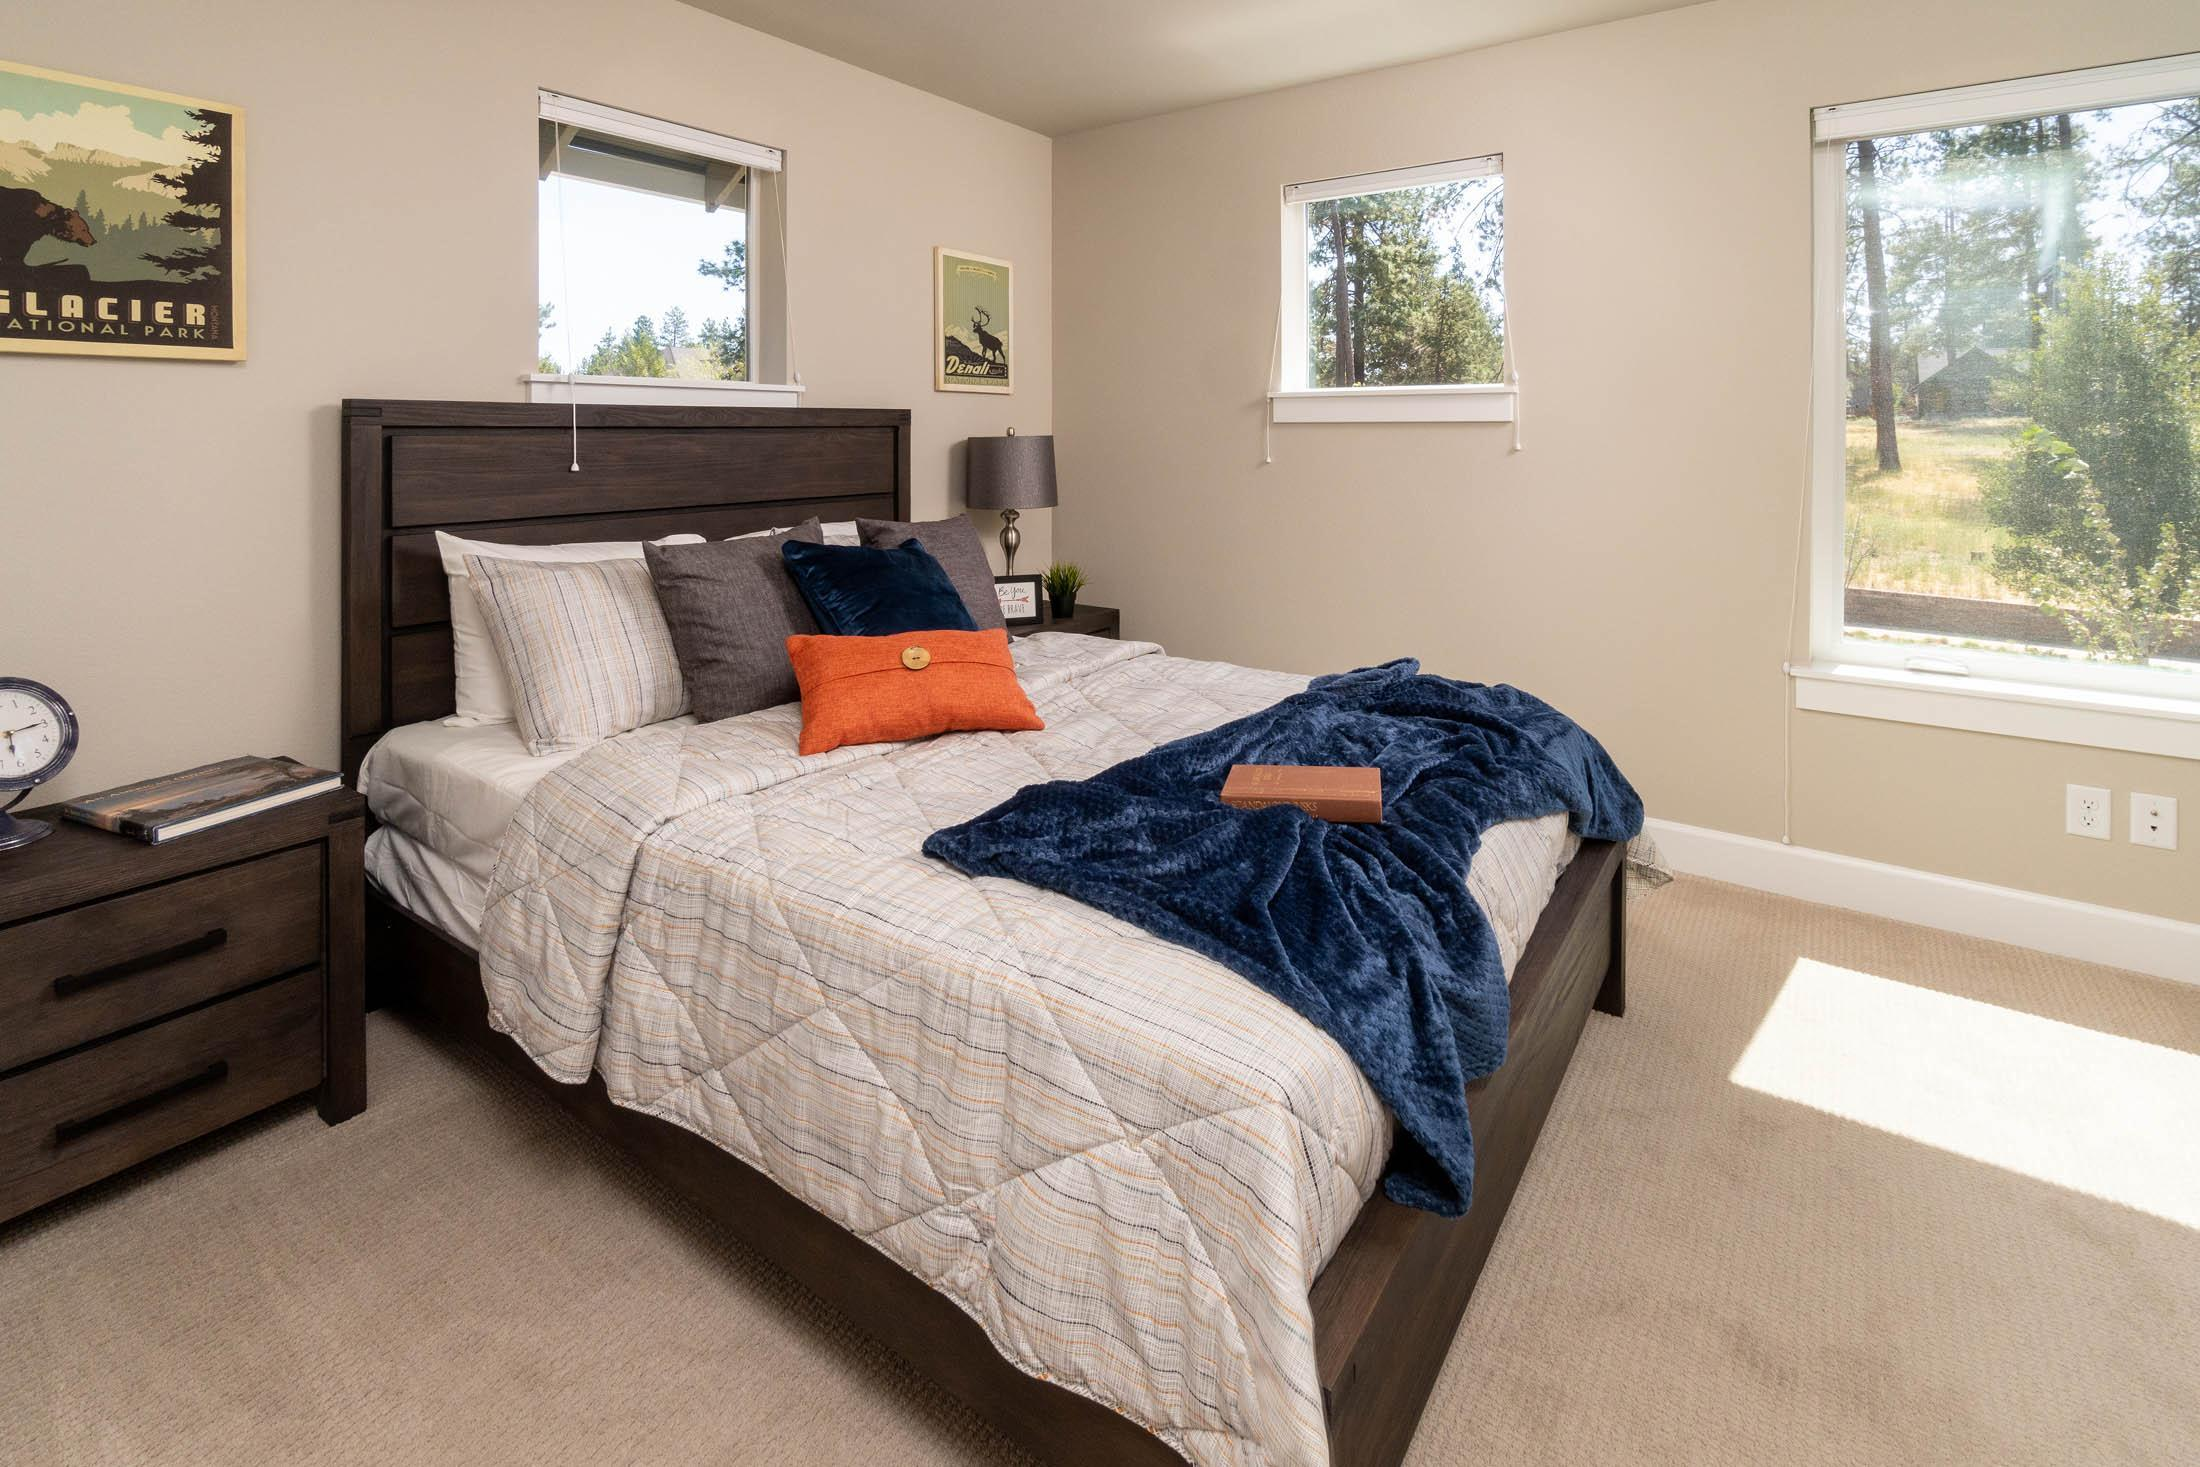 Bedroom featured in The Larch By Woodhill Homes in Central Oregon, OR